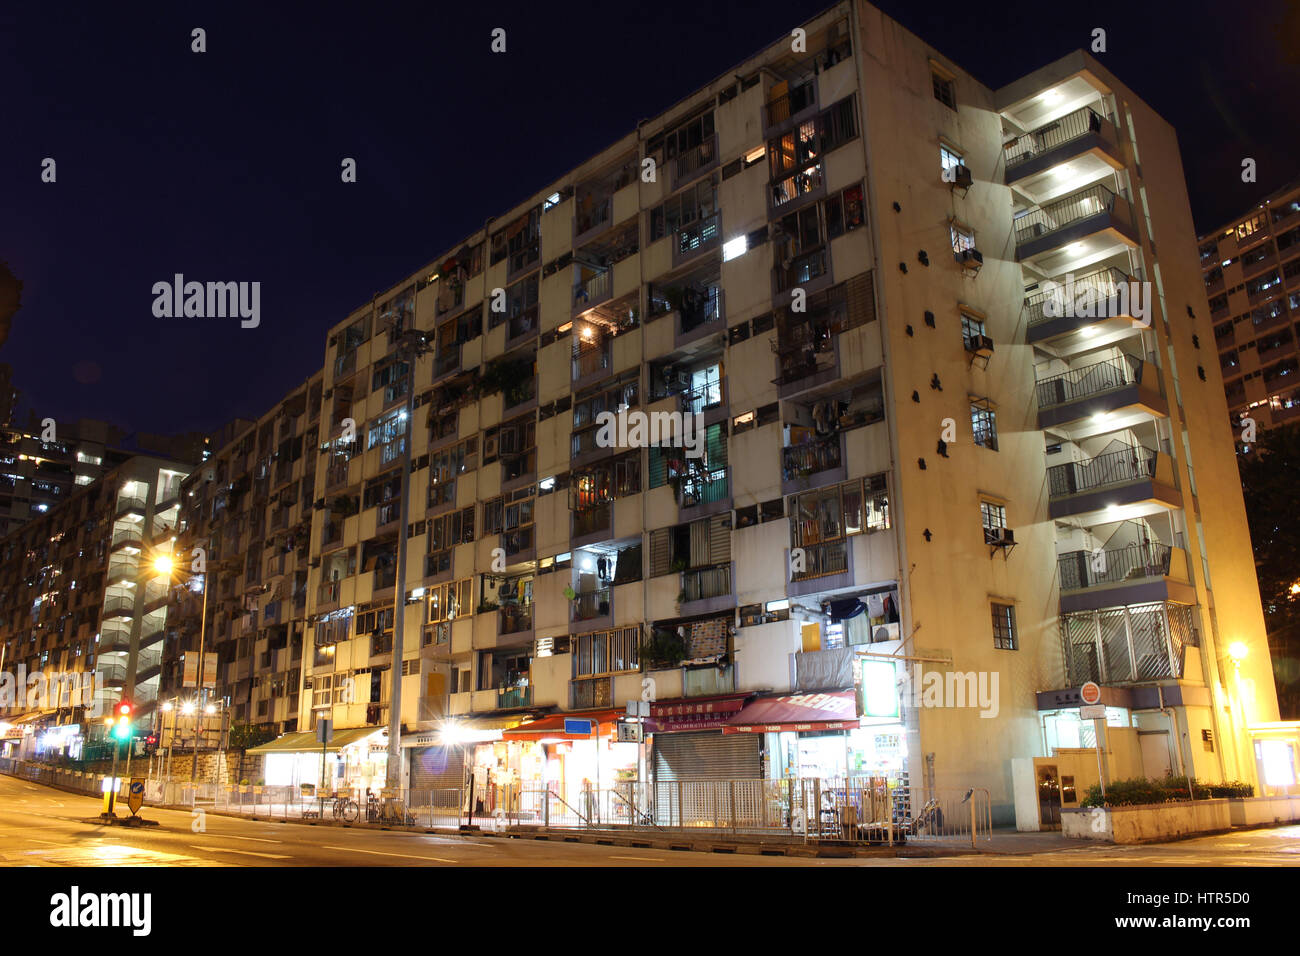 Exterior of an old public housing built by the government in ngau tau kok, Hong Kong, at night - Stock Image